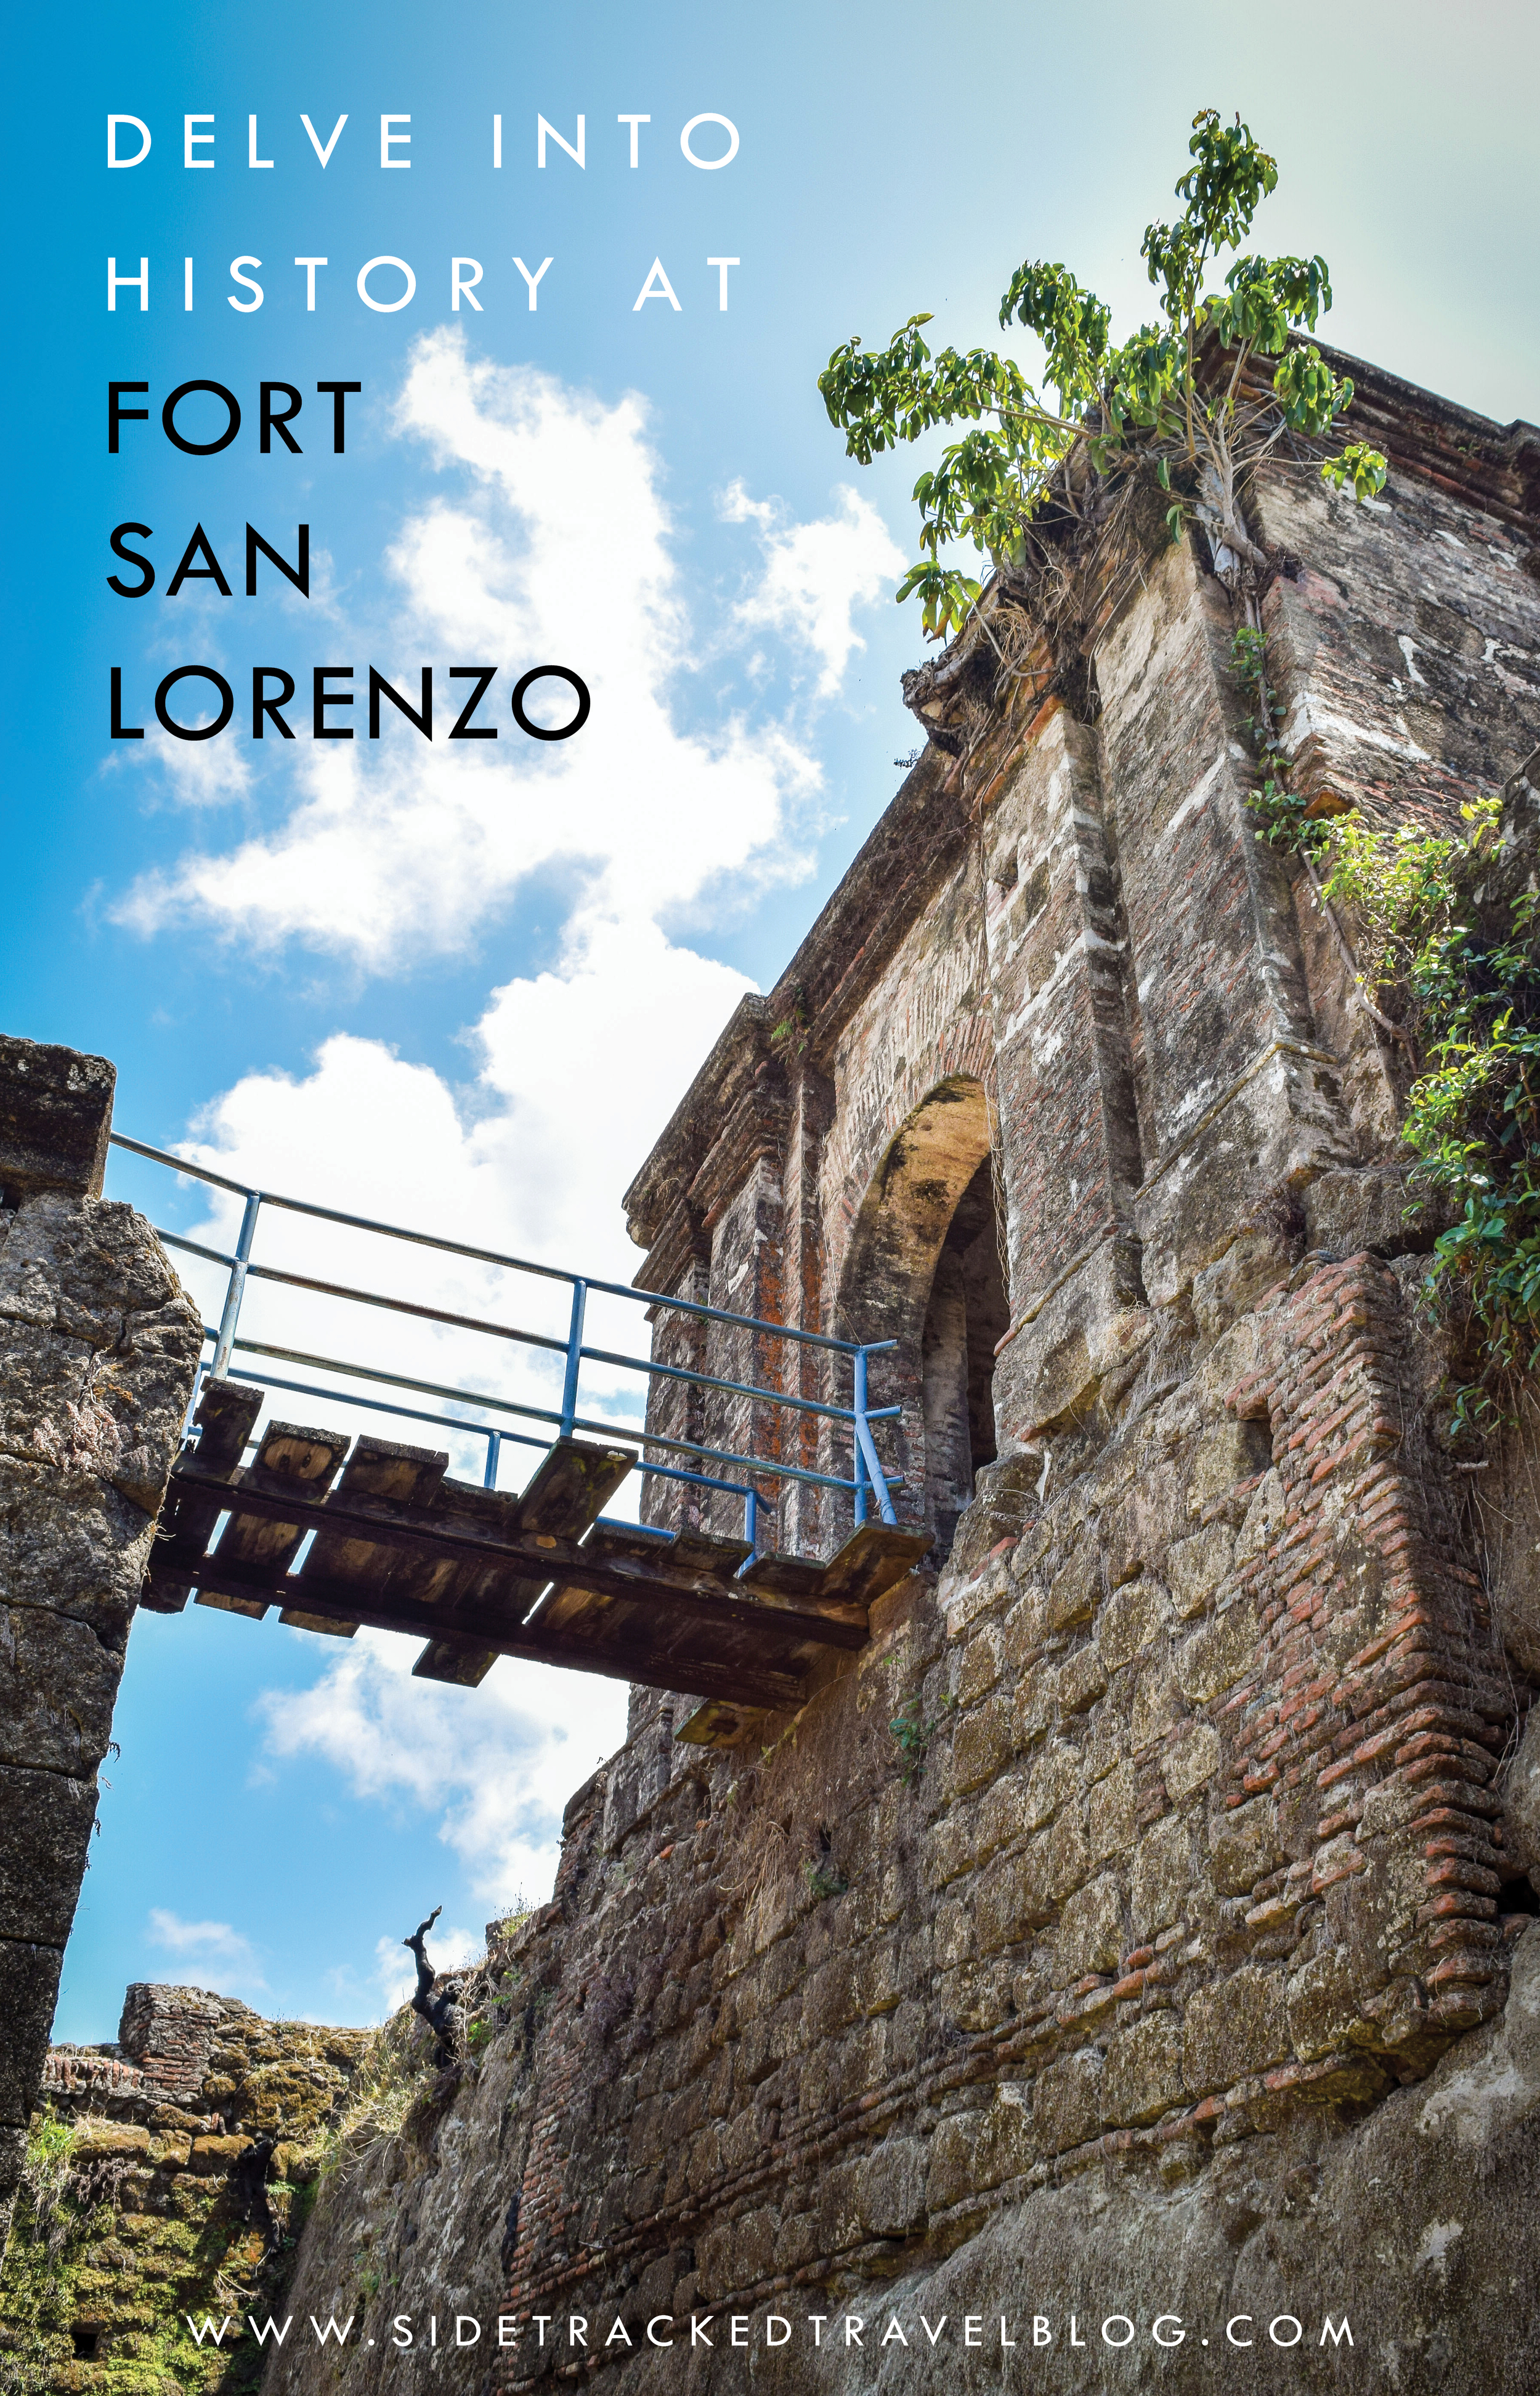 Located near the town of Colón on Panama's Caribbean coast, the historical ruins of Fort San Lorenzo are just the place to delve into the nation's intriguing past.